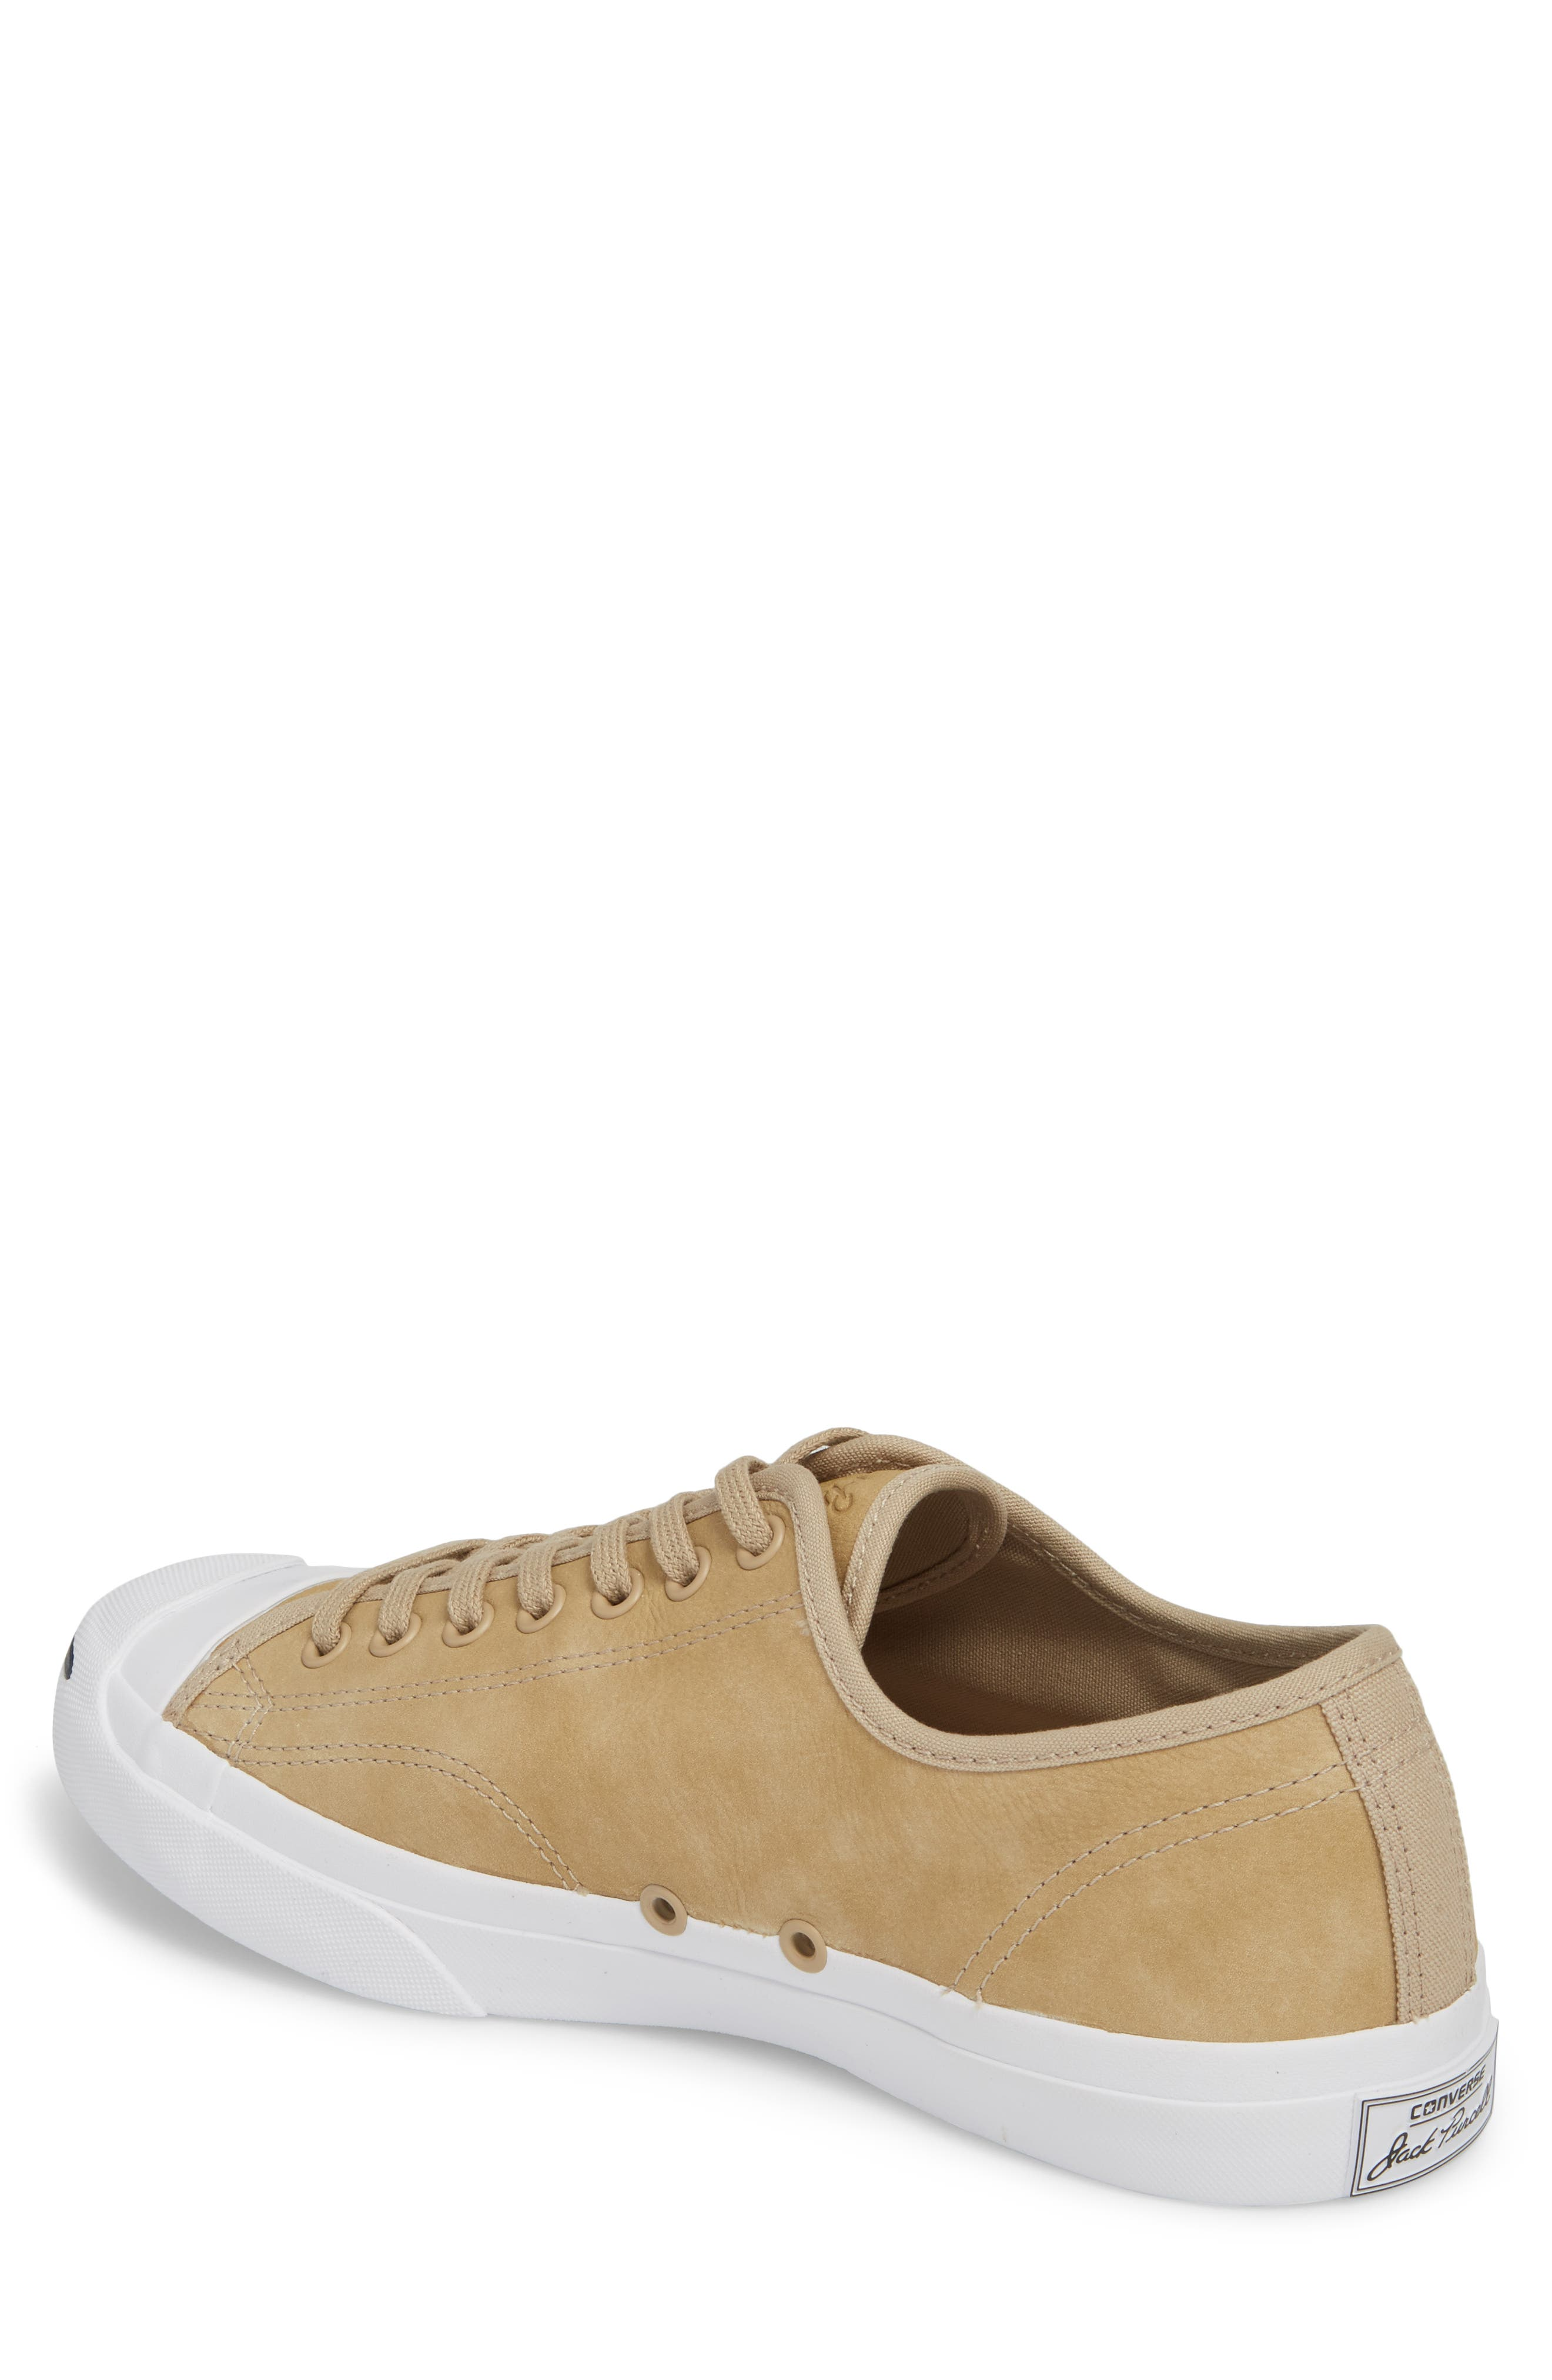 'Jack Purcell - Jack' Sneaker,                             Alternate thumbnail 2, color,                             Vintage Khaki Nubuck